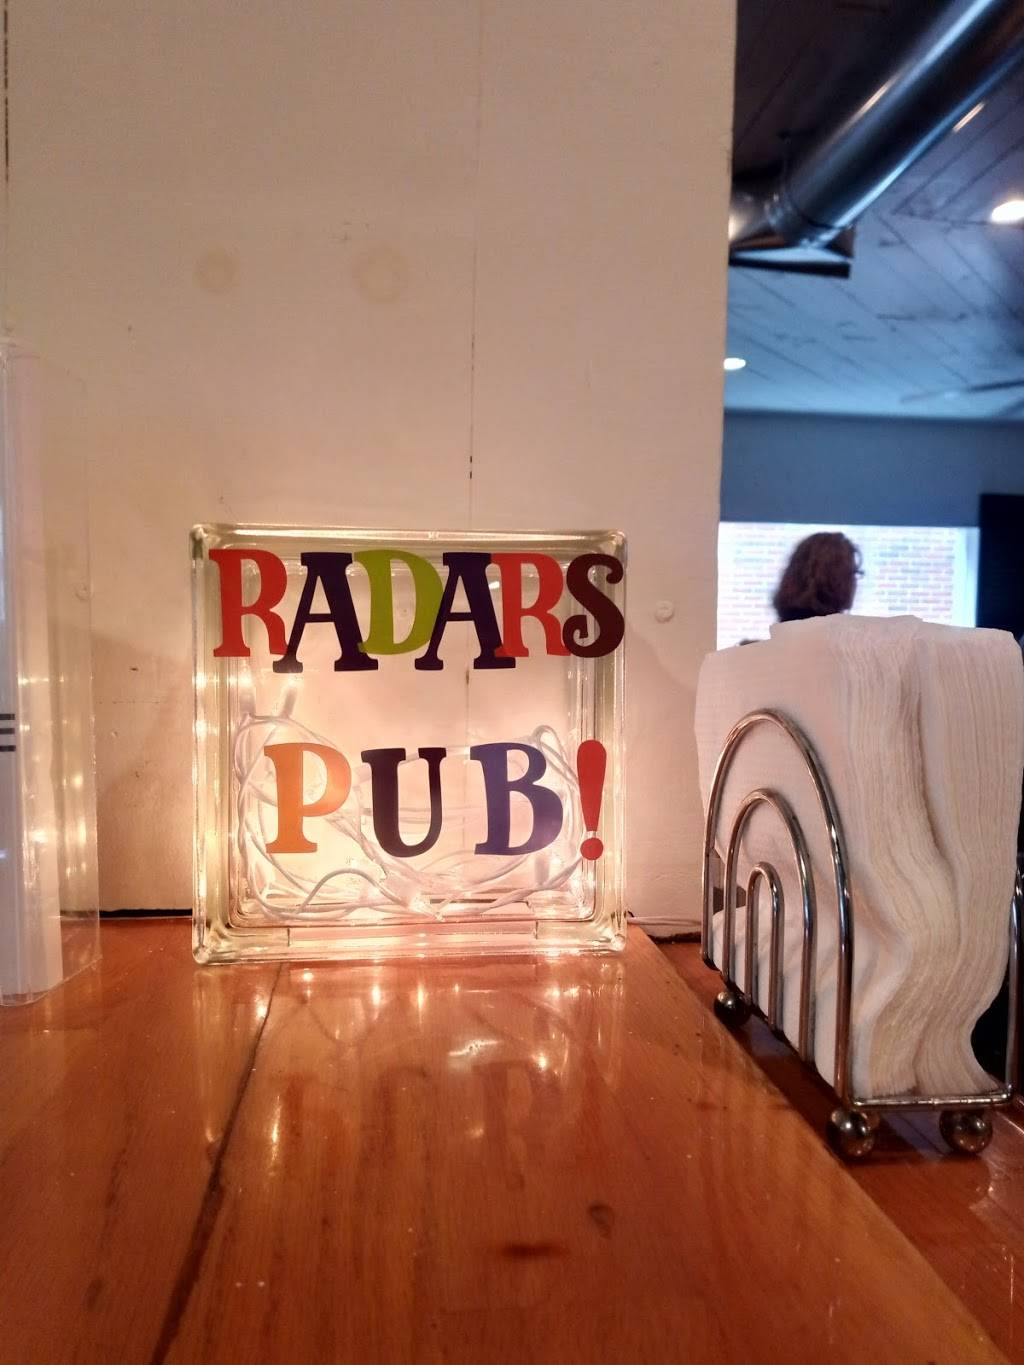 Radars Pub | restaurant | 2052 Main St, Three Rivers, MA 01080, USA | 4132836989 OR +1 413-283-6989